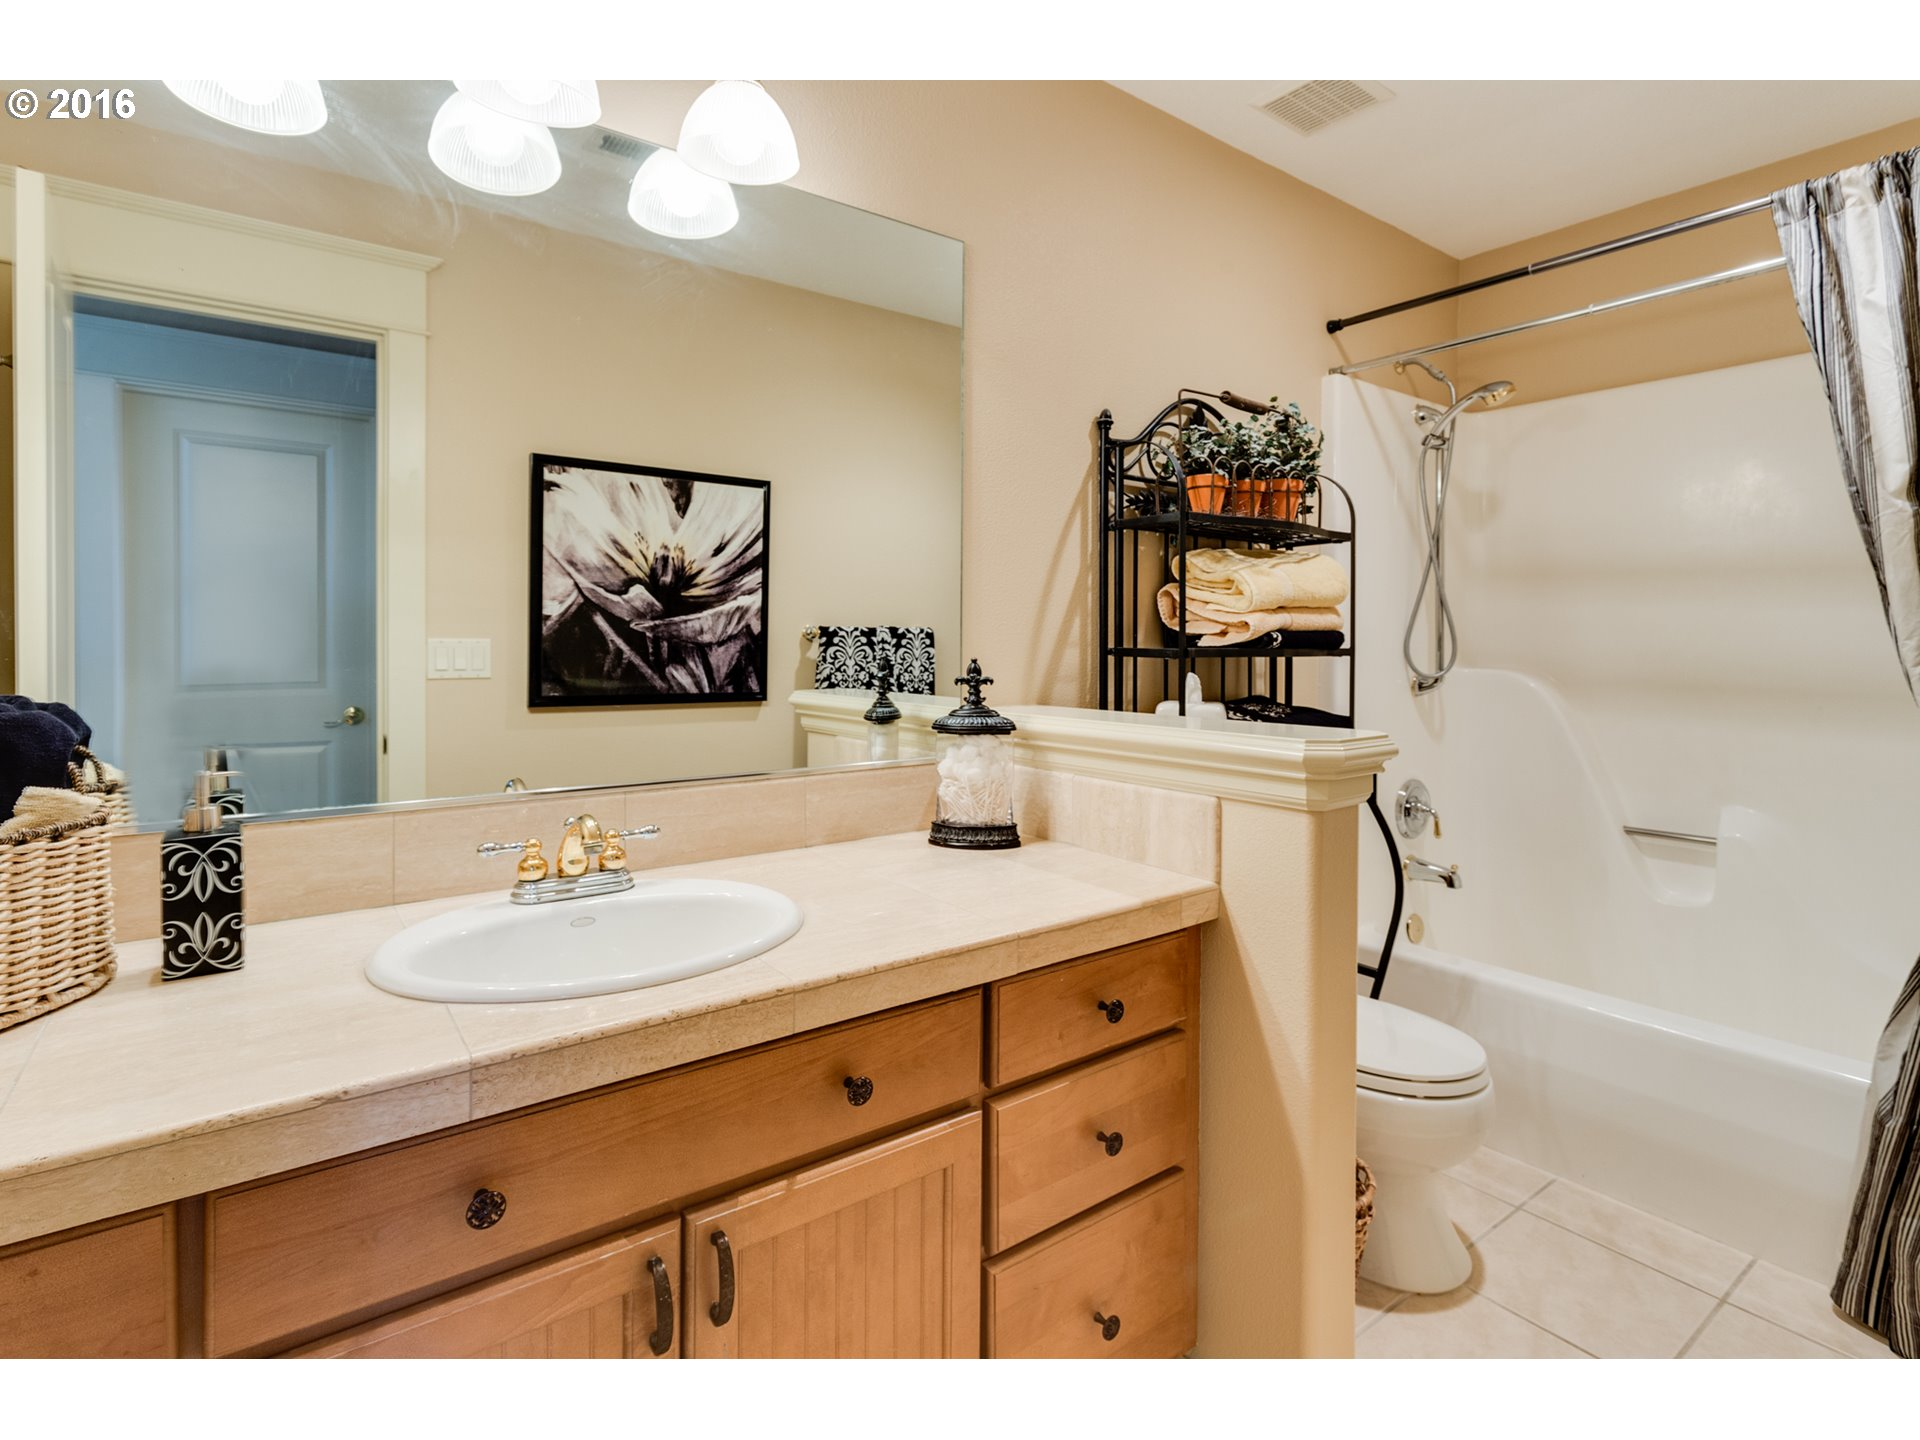 HALL BATHROOM MATT MORRIS 360-773-7333